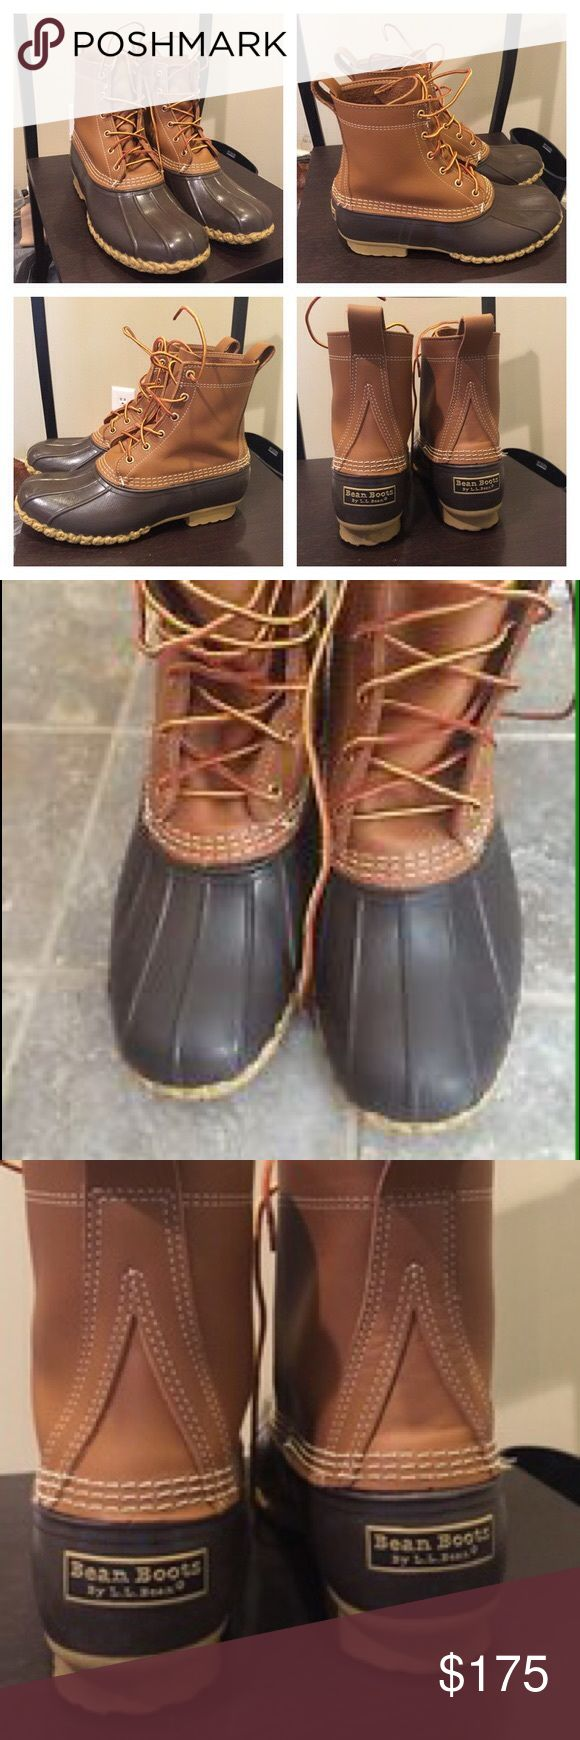 """LIKE NEW L.L. Bean 8"""" Bean Boots Women's Size 8 LIKE NEW Authentic L.L. Bean 8"""" Duck Boots Women's Size 8 Sold from a true mainer boughten at L.L. Bean Factory next door to me Size 8 fits women's 9 thanks for looking perfect boot for winter ! Genuine leather L.L. Bean Shoes Winter & Rain Boots"""